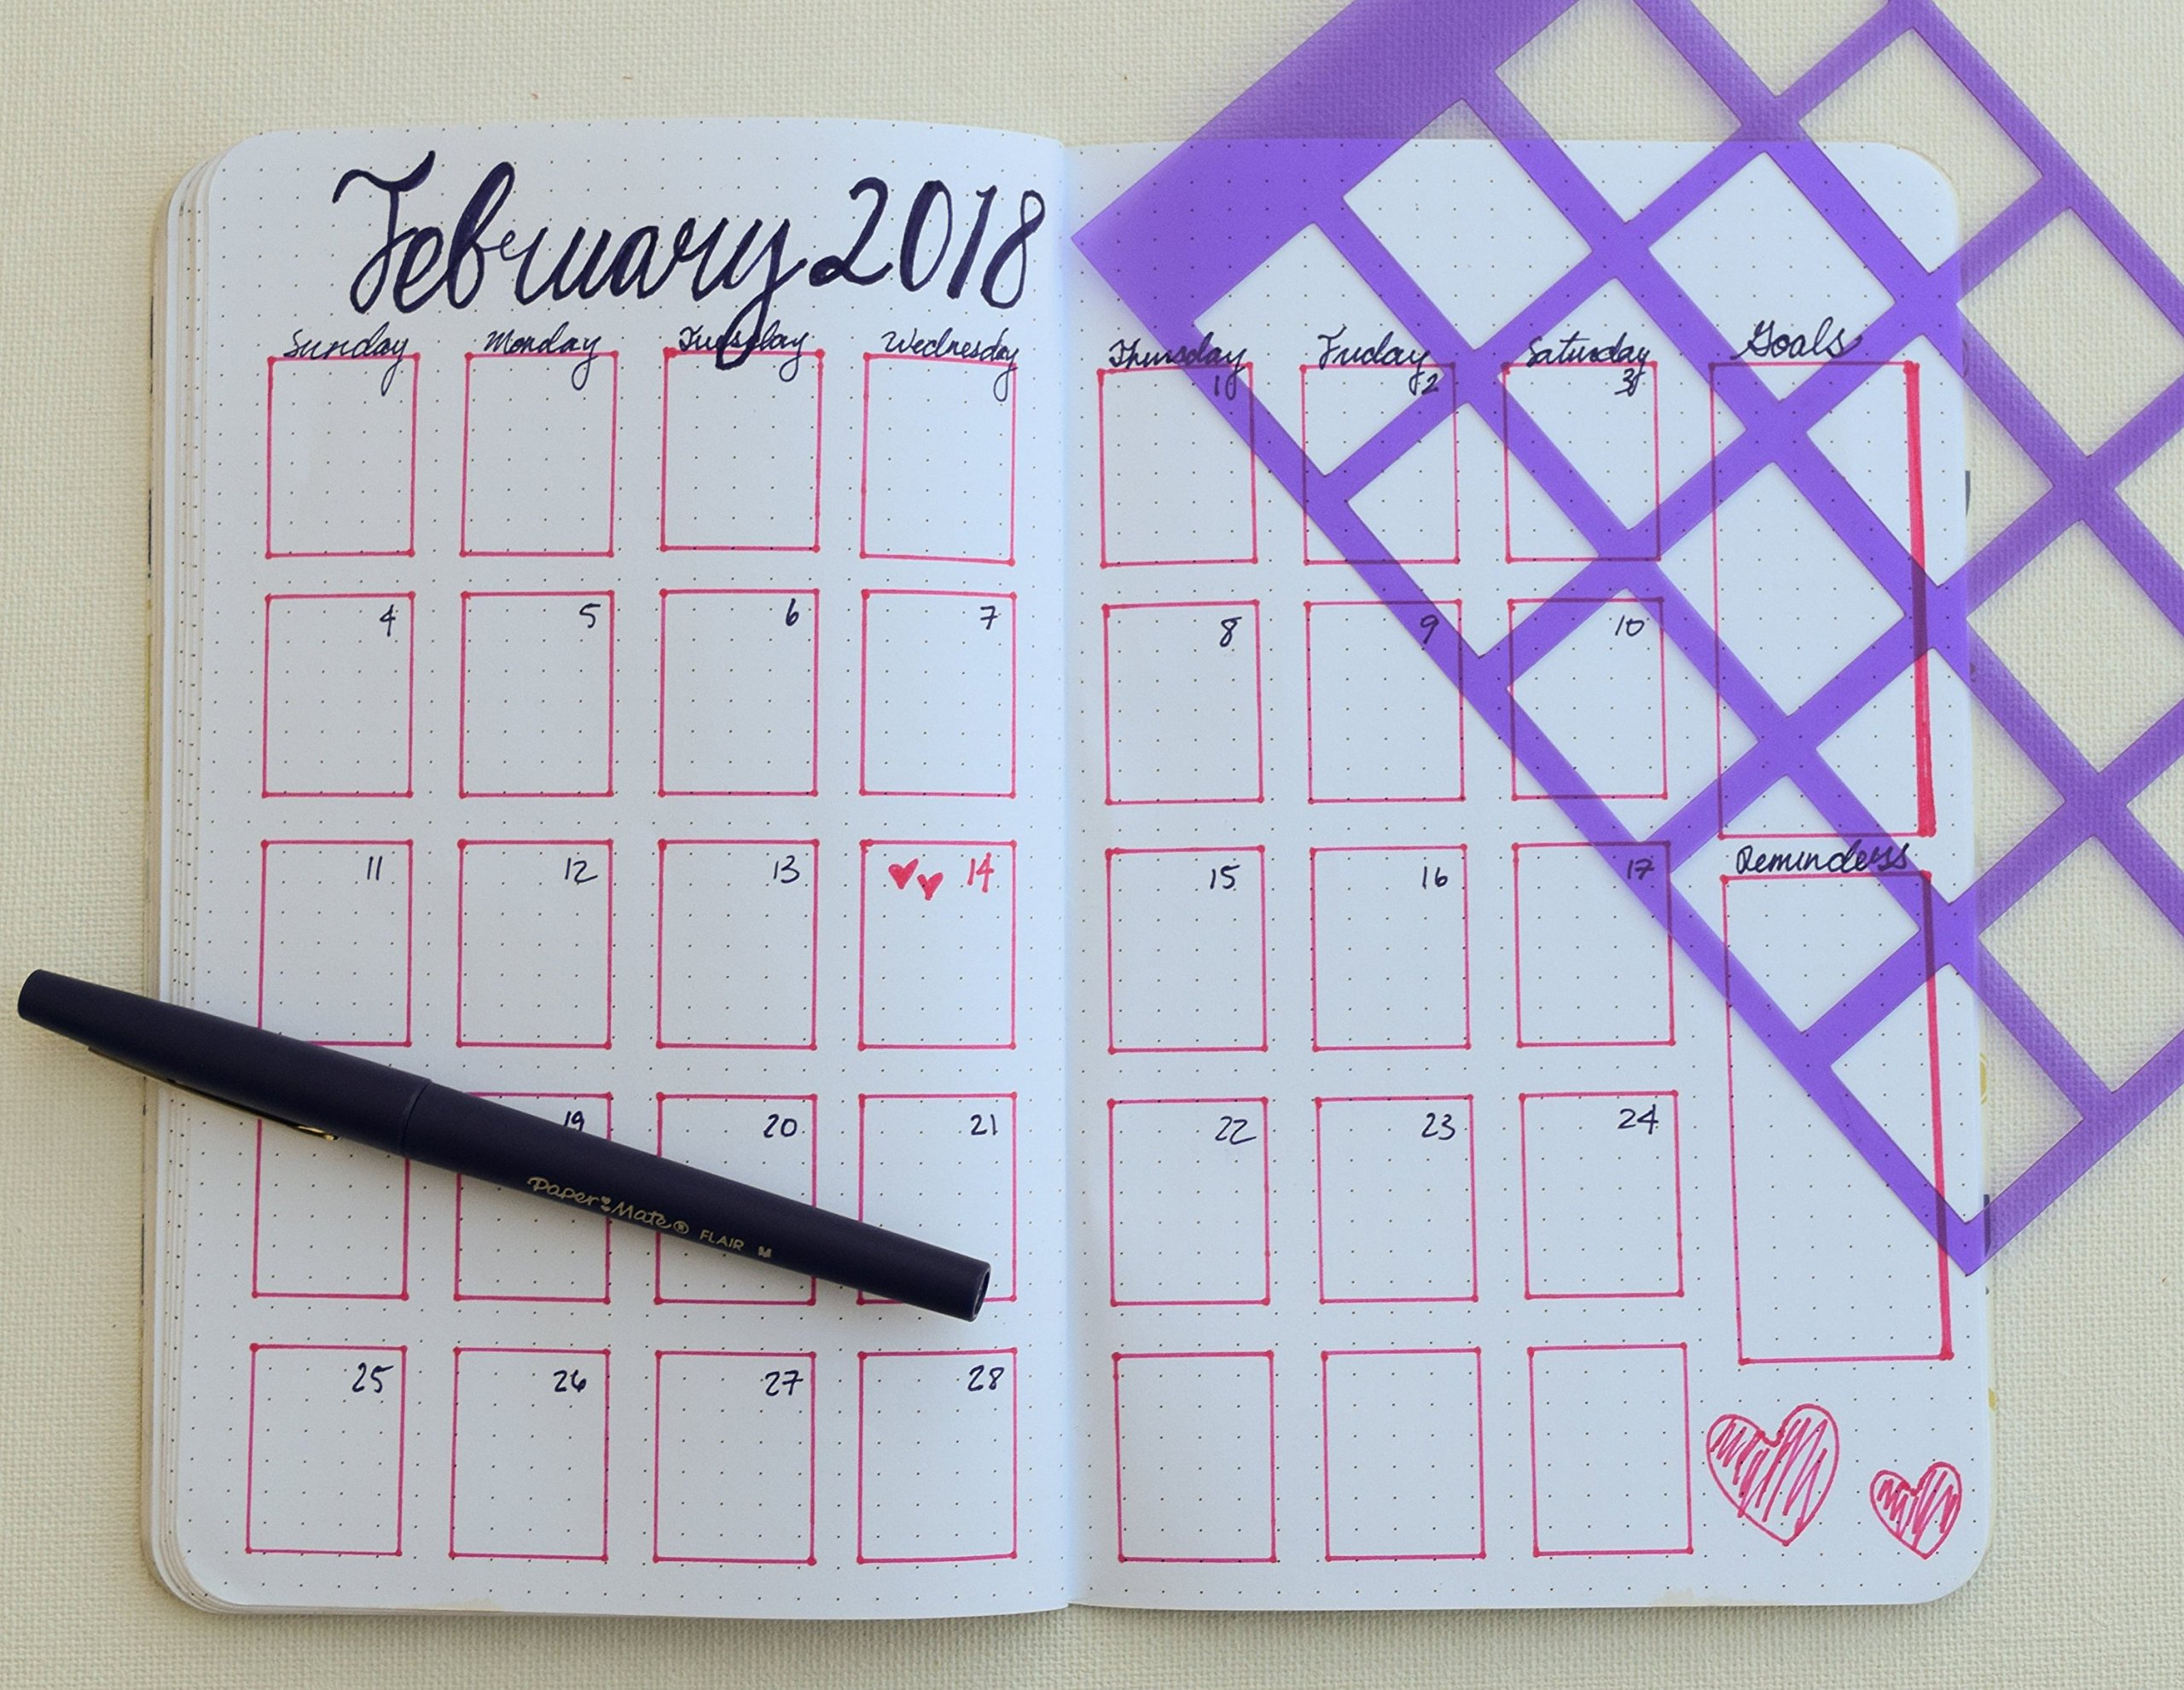 3 Journal Stencils: Monthly Spread, Weekly Spread, Monthly Overview, and Notes, Goals, Shopping Lists